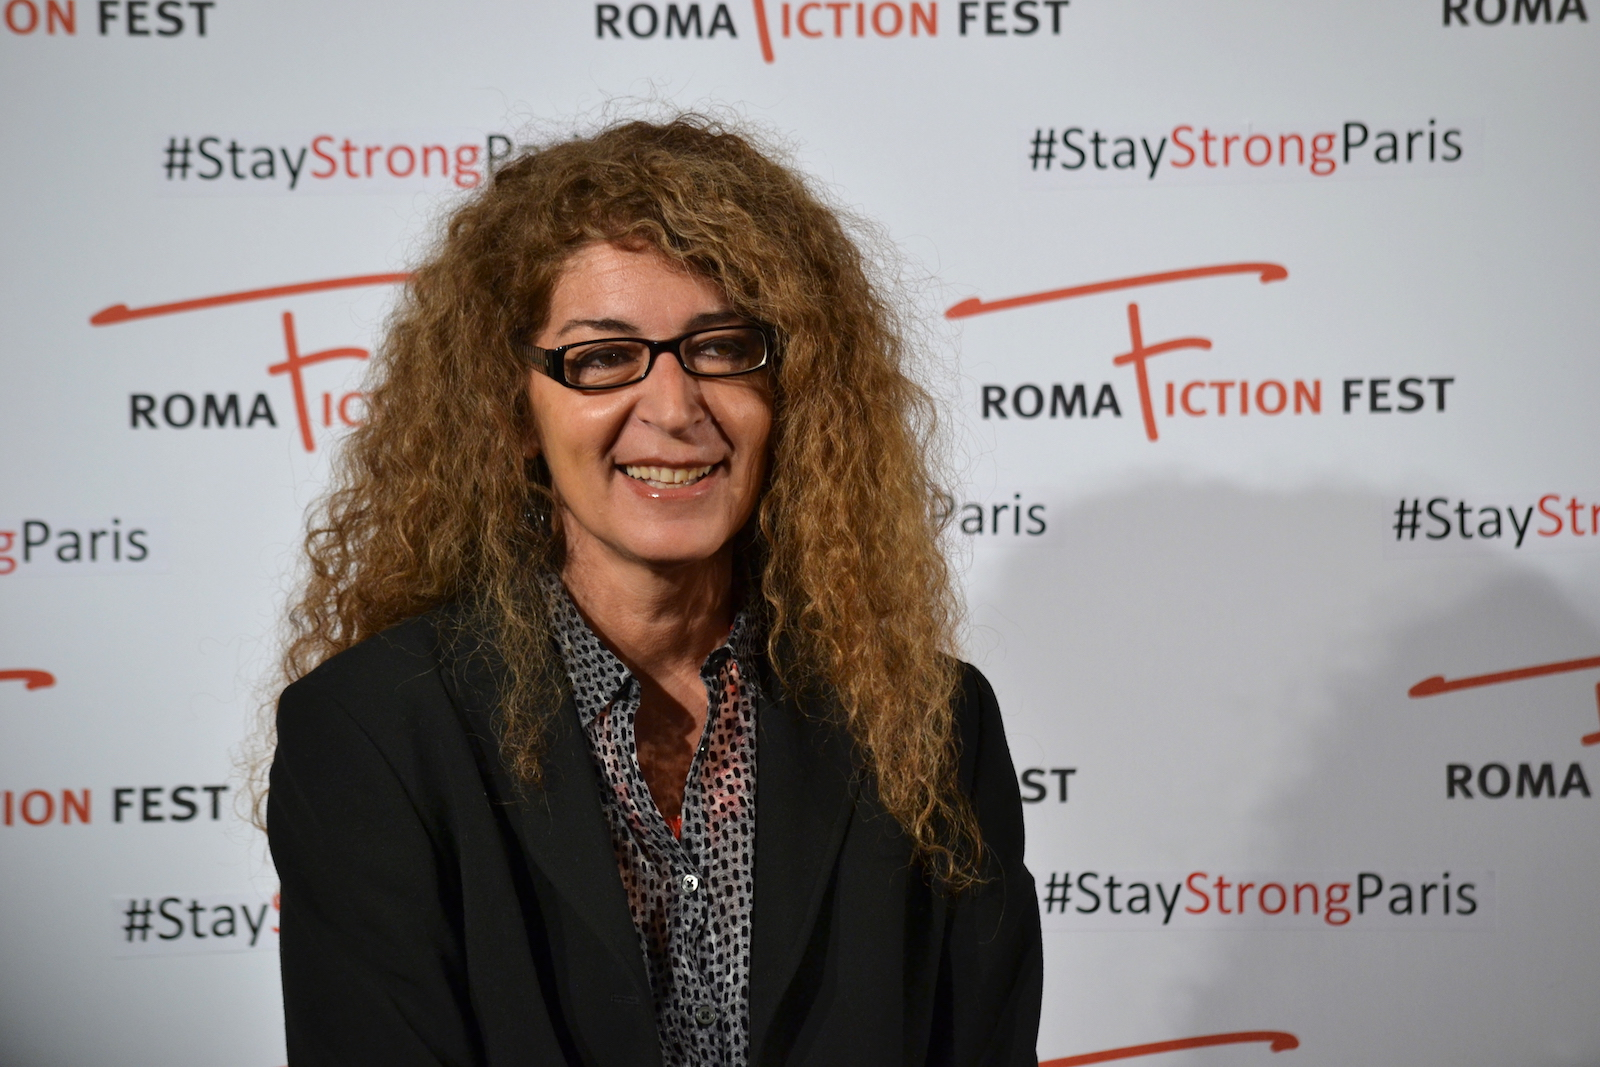 Roma Fiction Fest 2015: Melania Mazzucco al photocall di Limbo